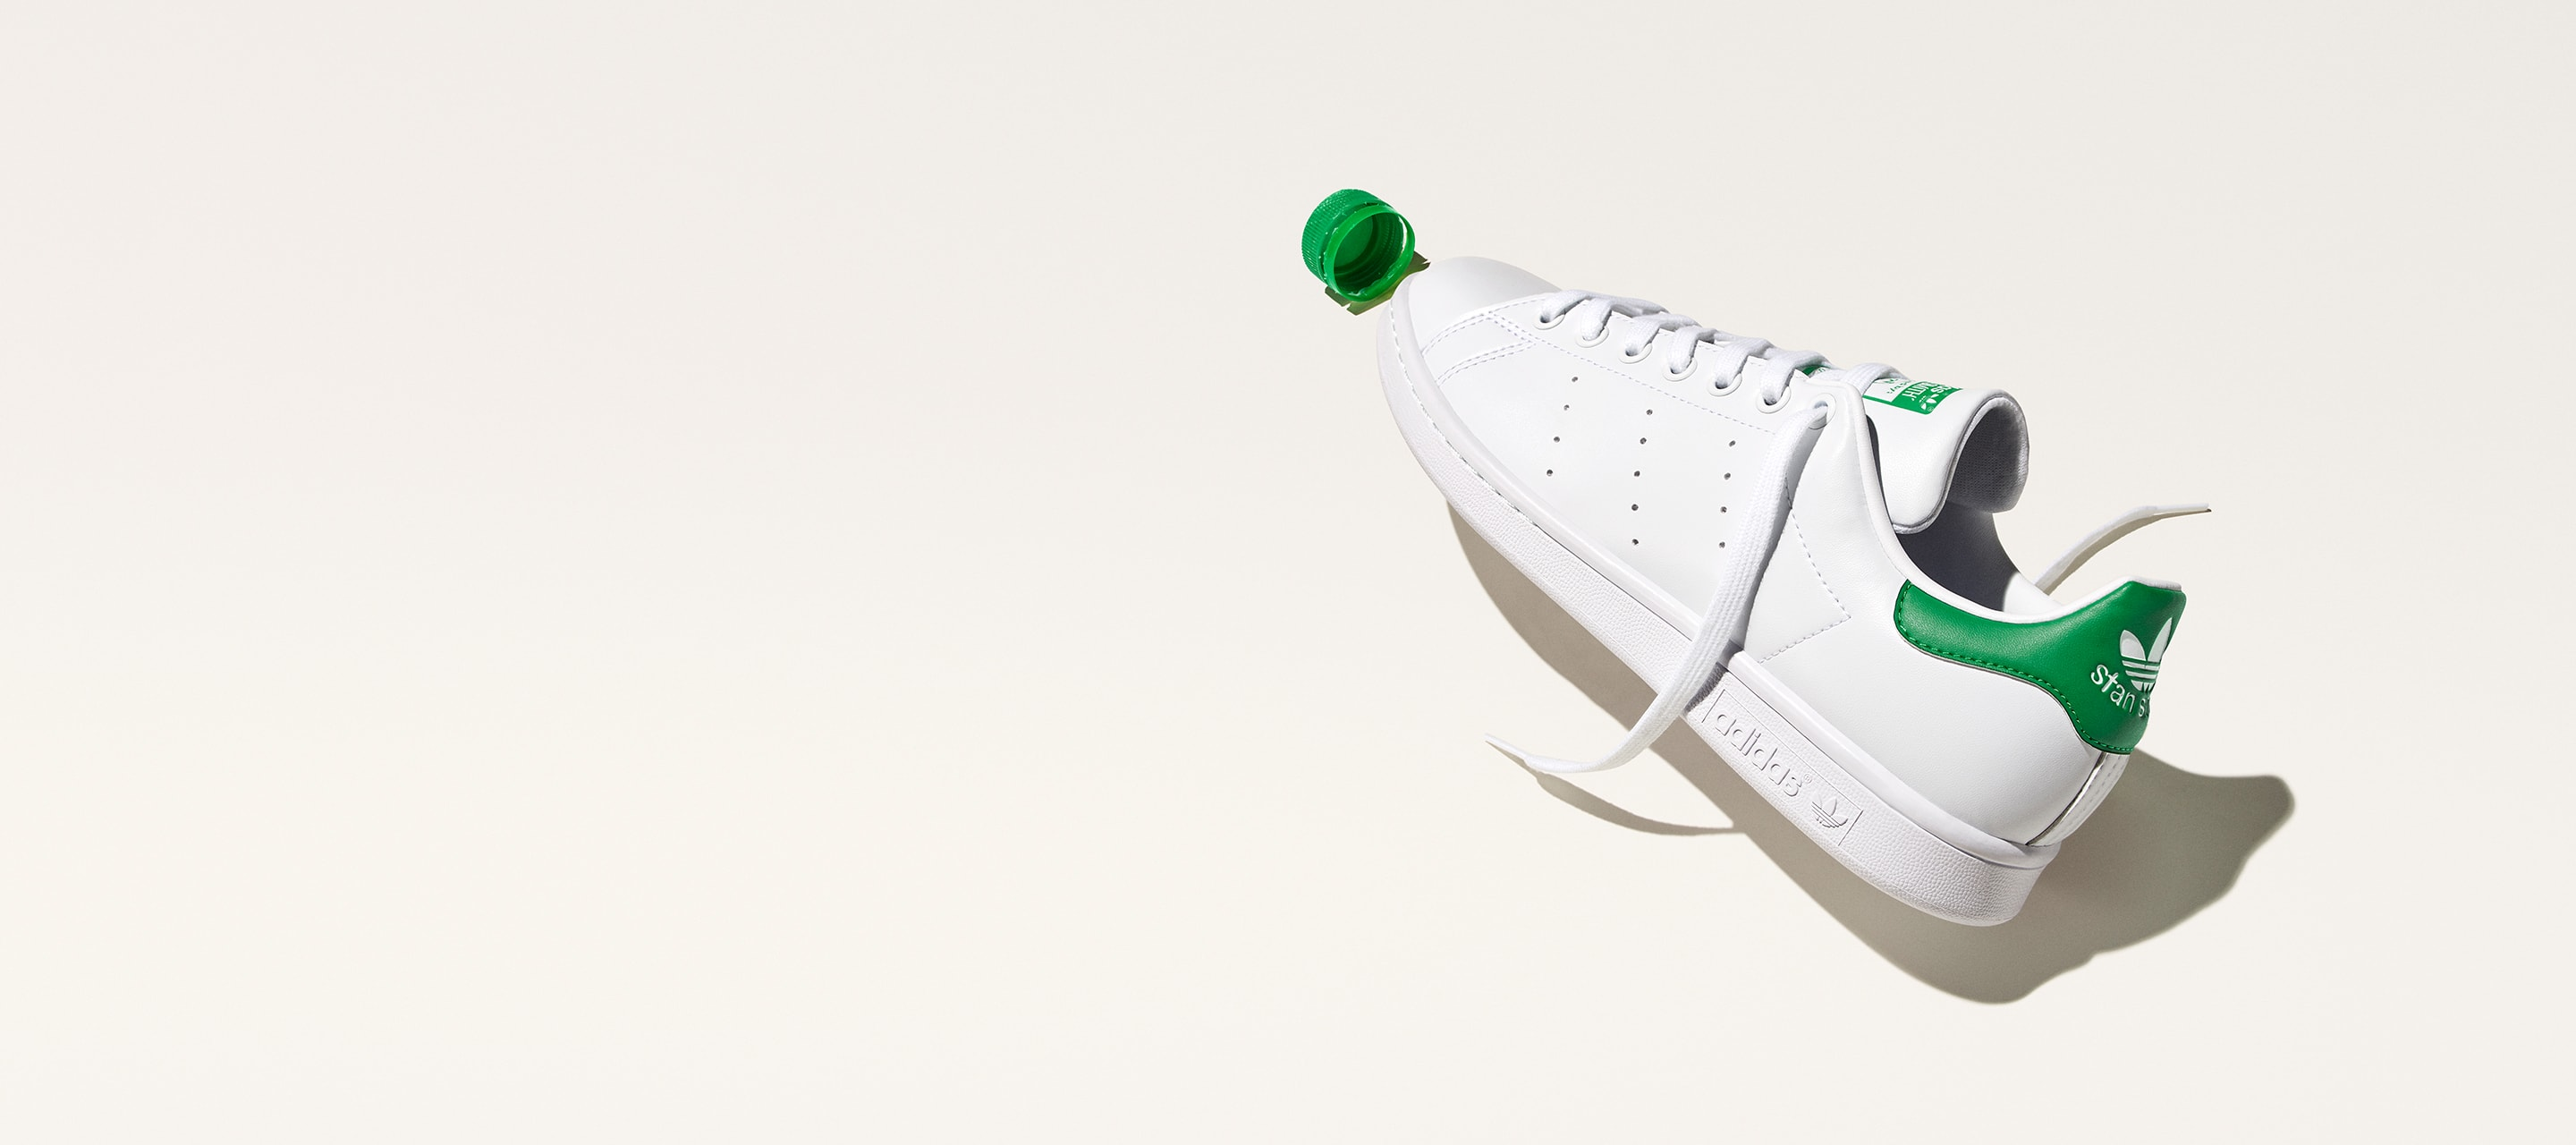 Stan Smith shoes stand upright. A plastic bottle cap leans against one. The years 1973 and 2021 are typed beside the shoes.